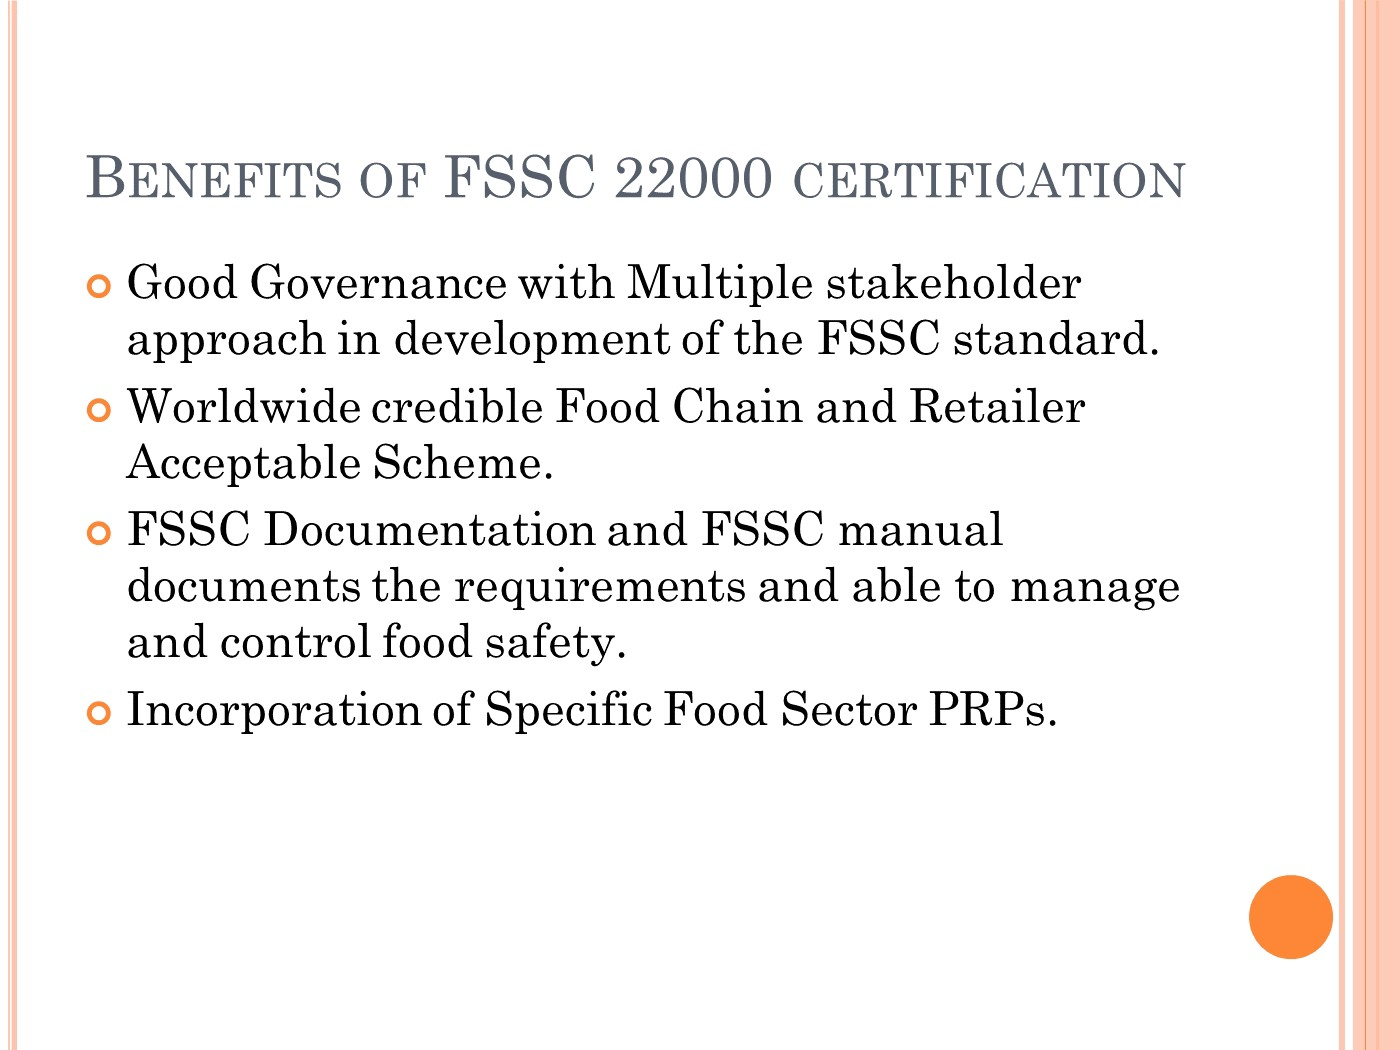 Importance Of FSSC 22000 Food Safety System Certification